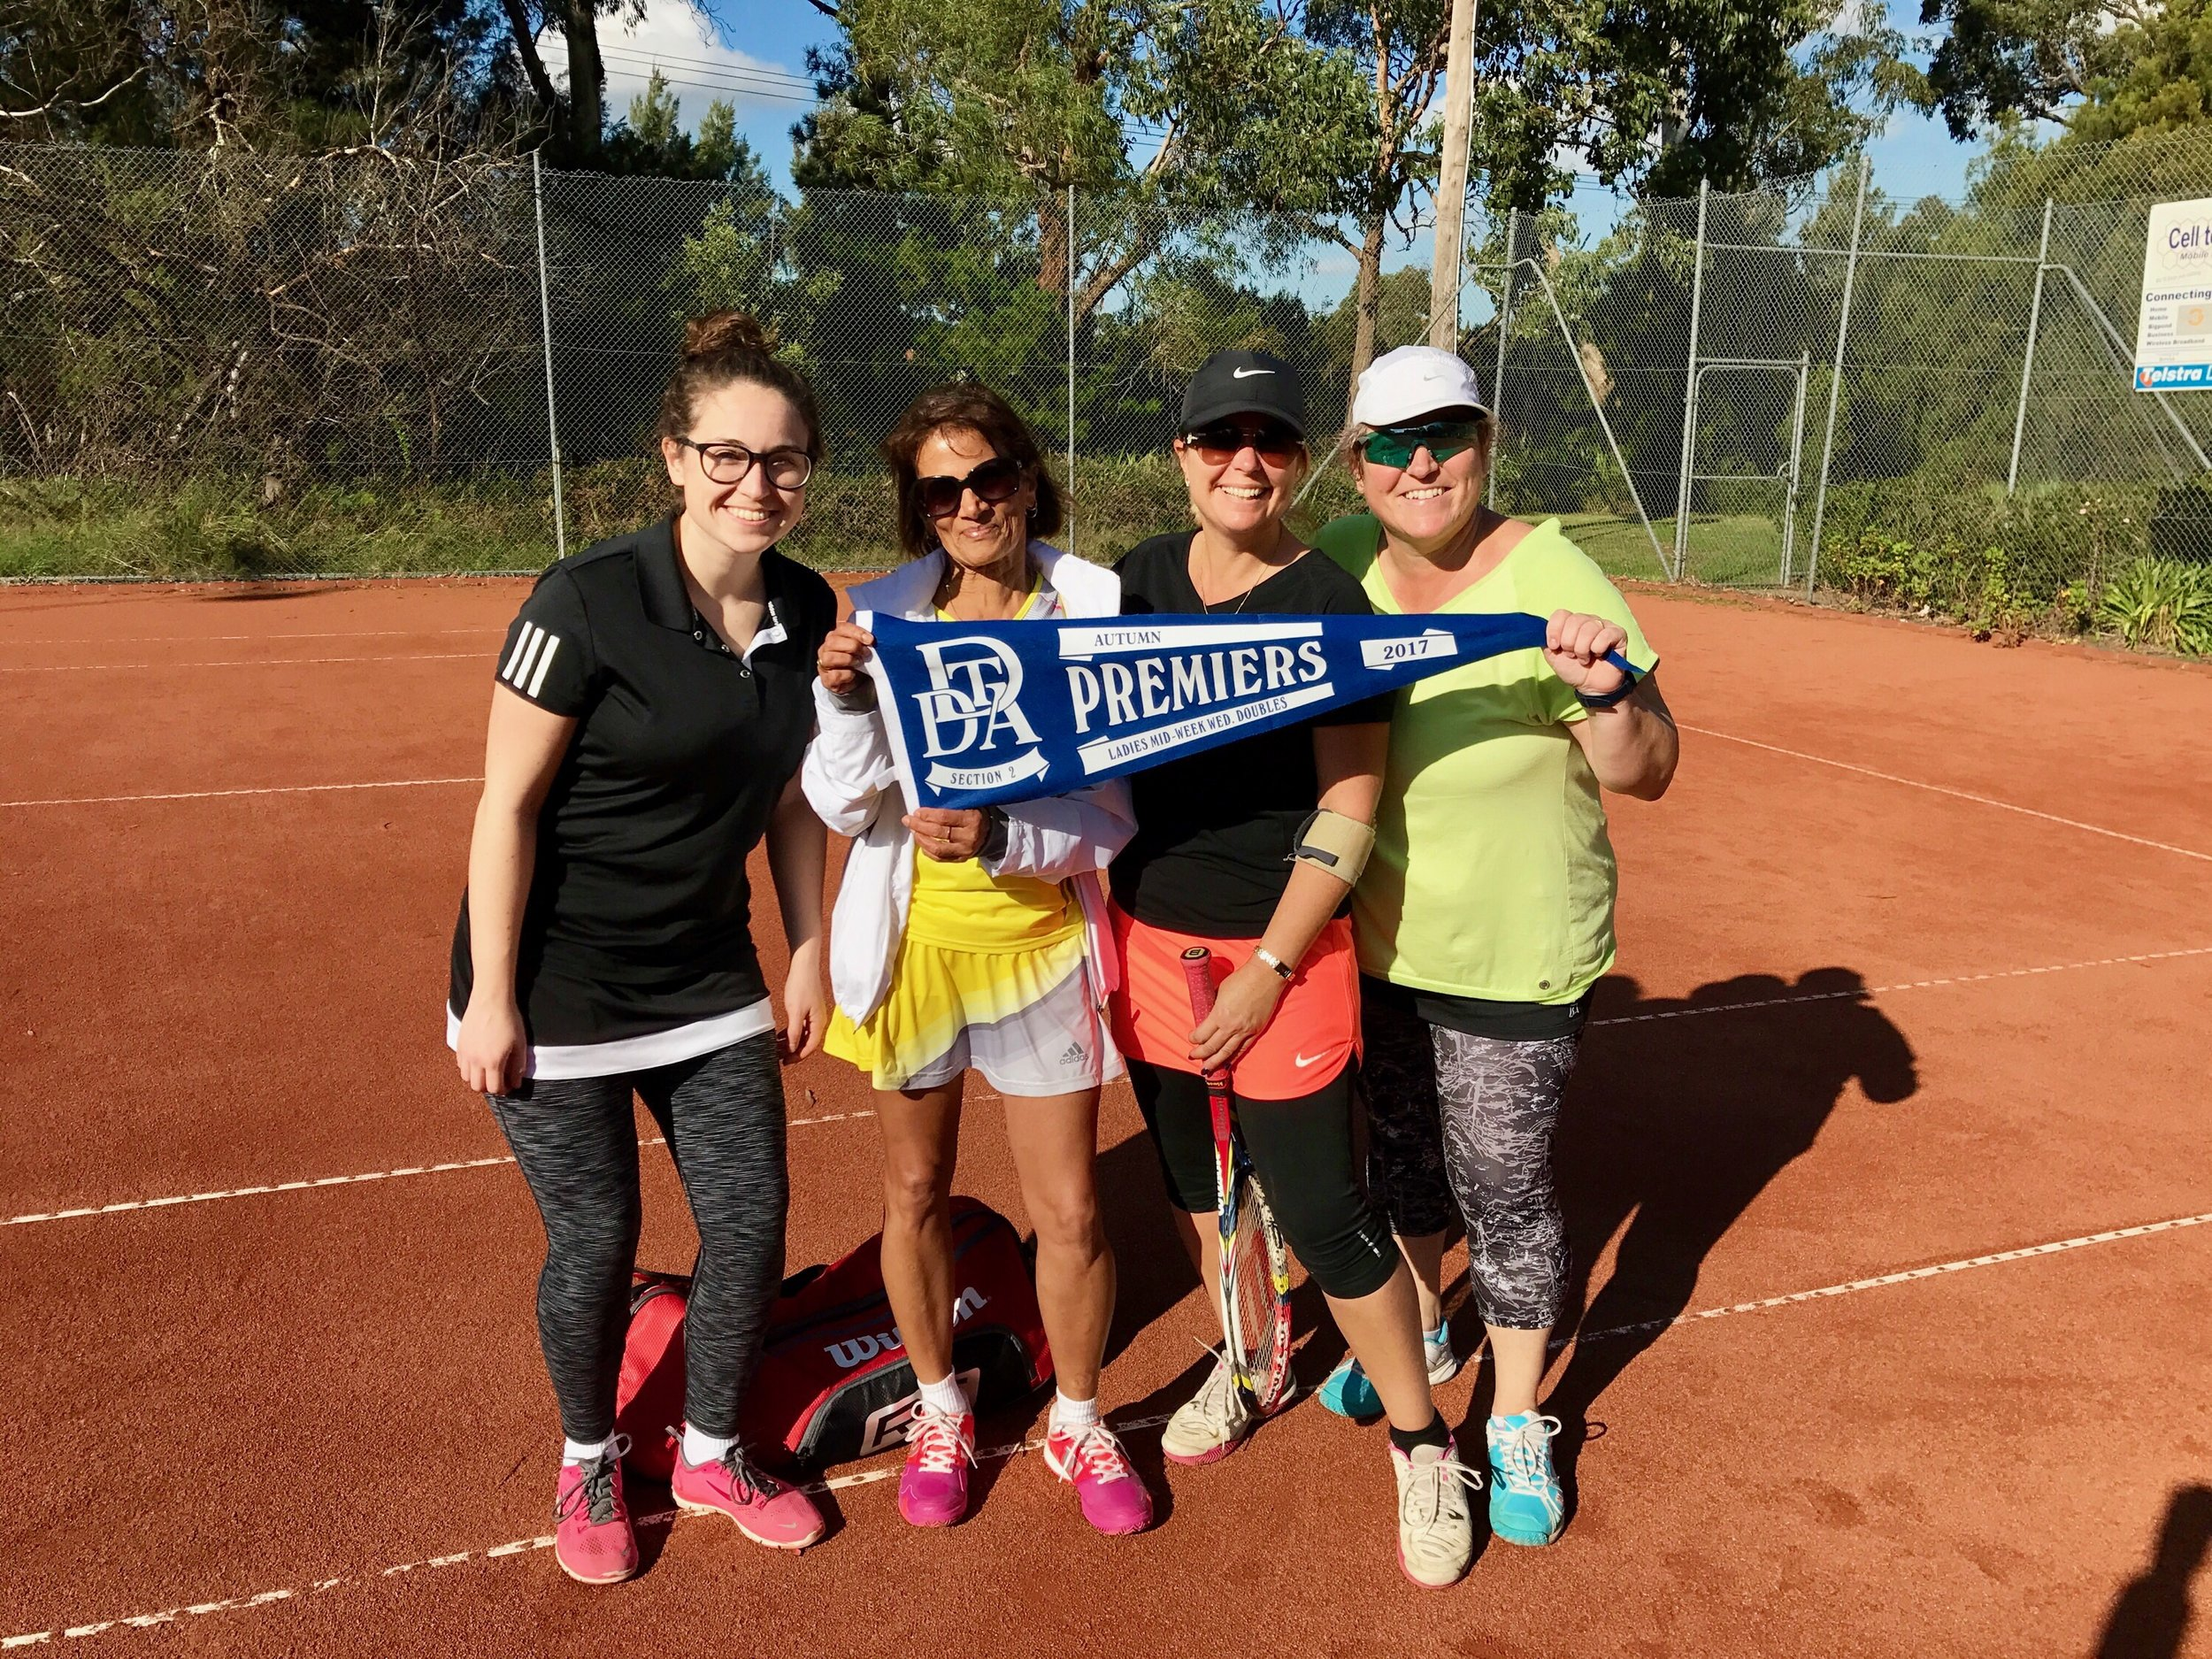 DDTA Wednesday Section 2 Premiers - Autumn 2017  Molly Delaney, Kitty Jayasinha, Jodie Radings, Kate Delaney (Absent -Felicity Tivendale, Caryn Green, Susan Defabritzio)  Congratulations ladies